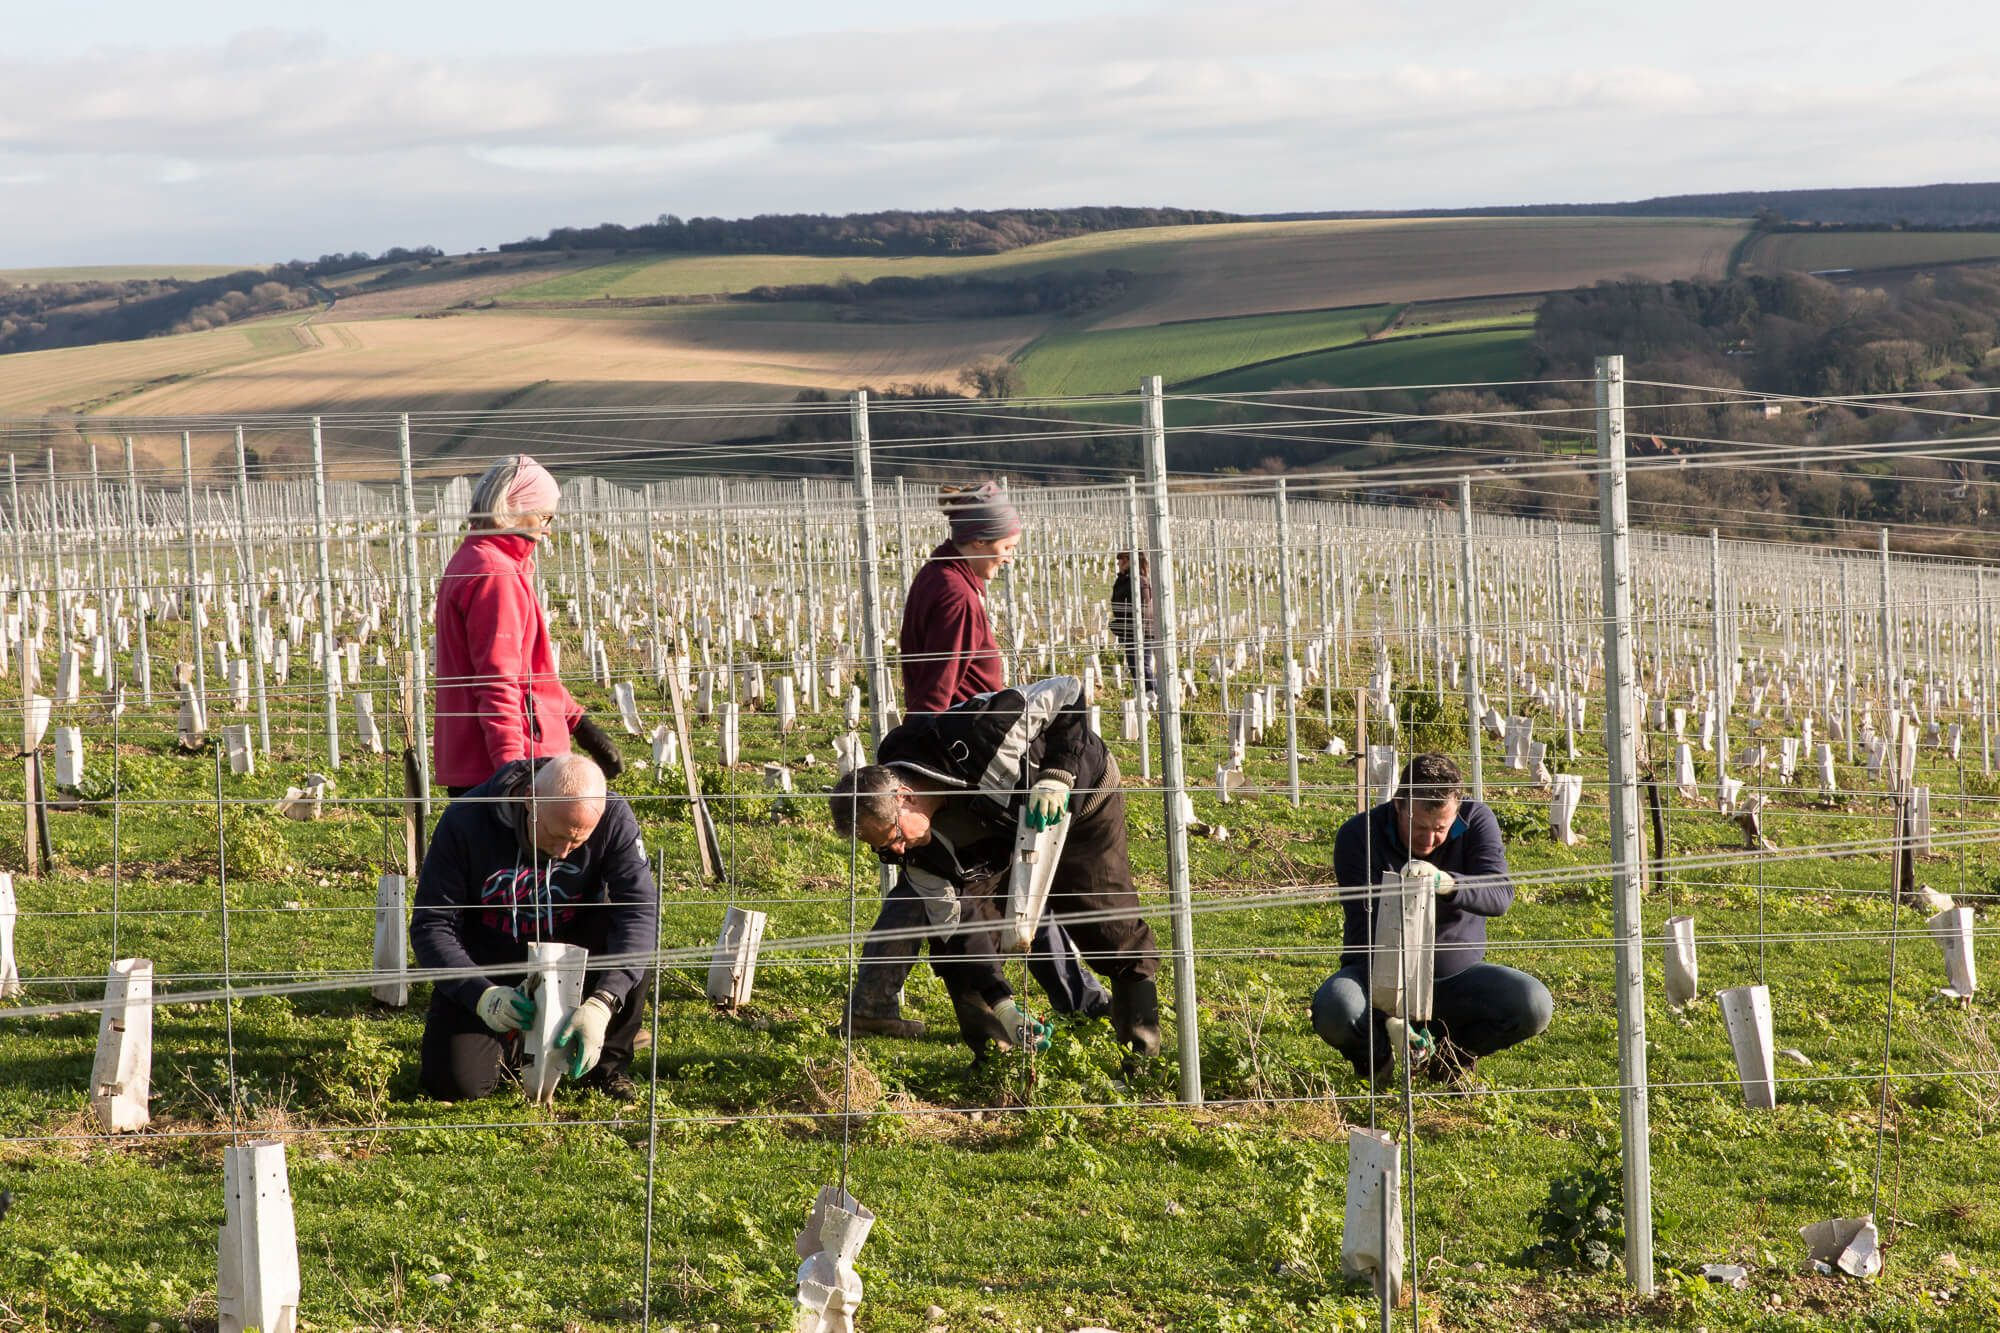 Pruning Young Vines